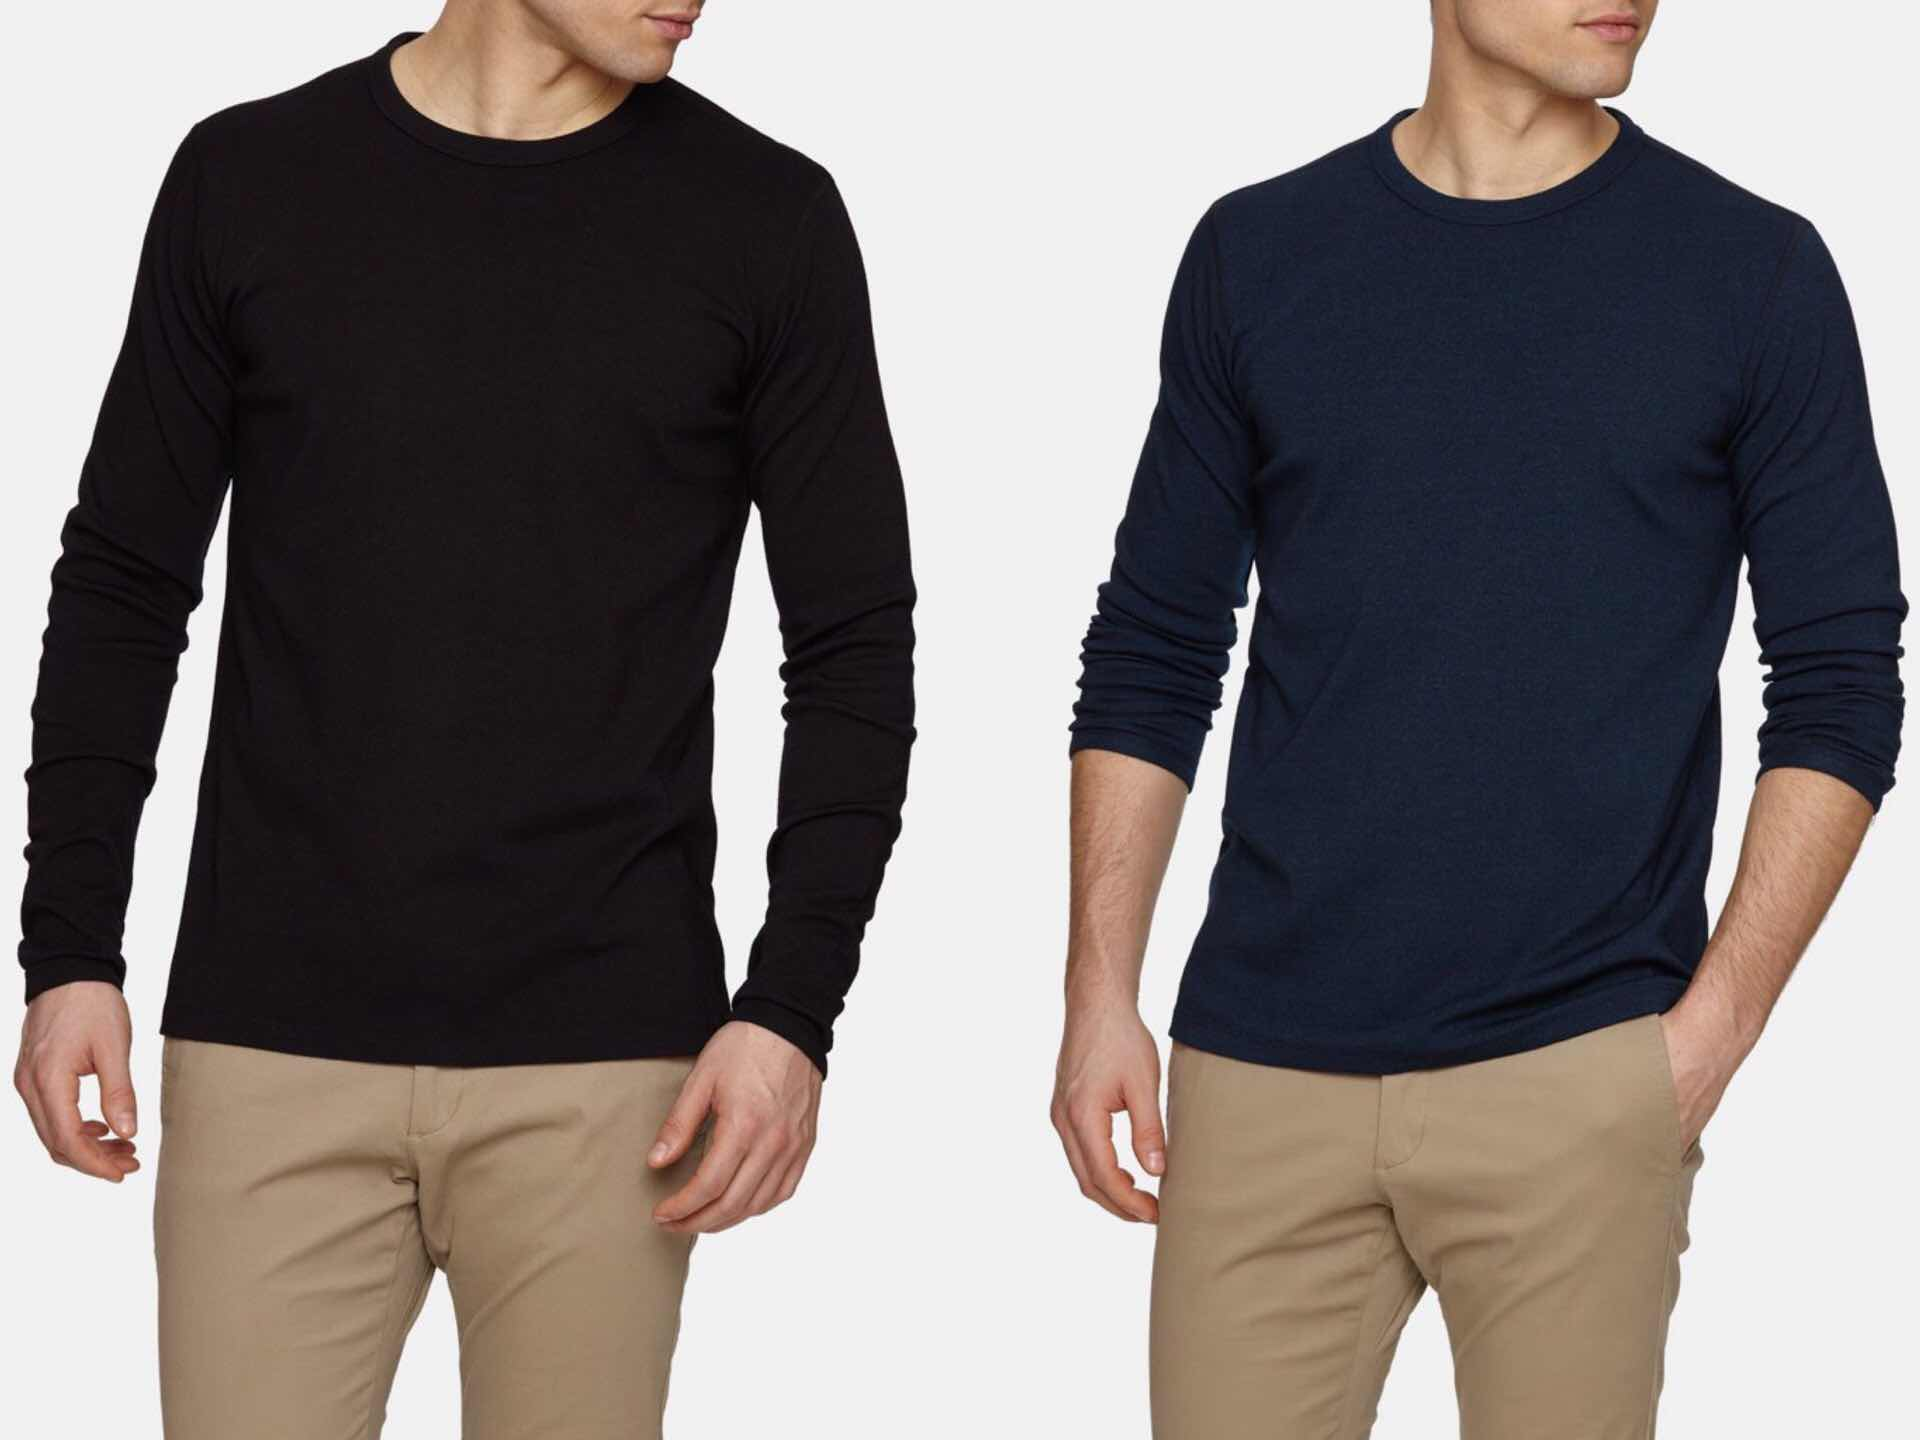 wool-and-prince-heavy-crew-neck-sweatshirts